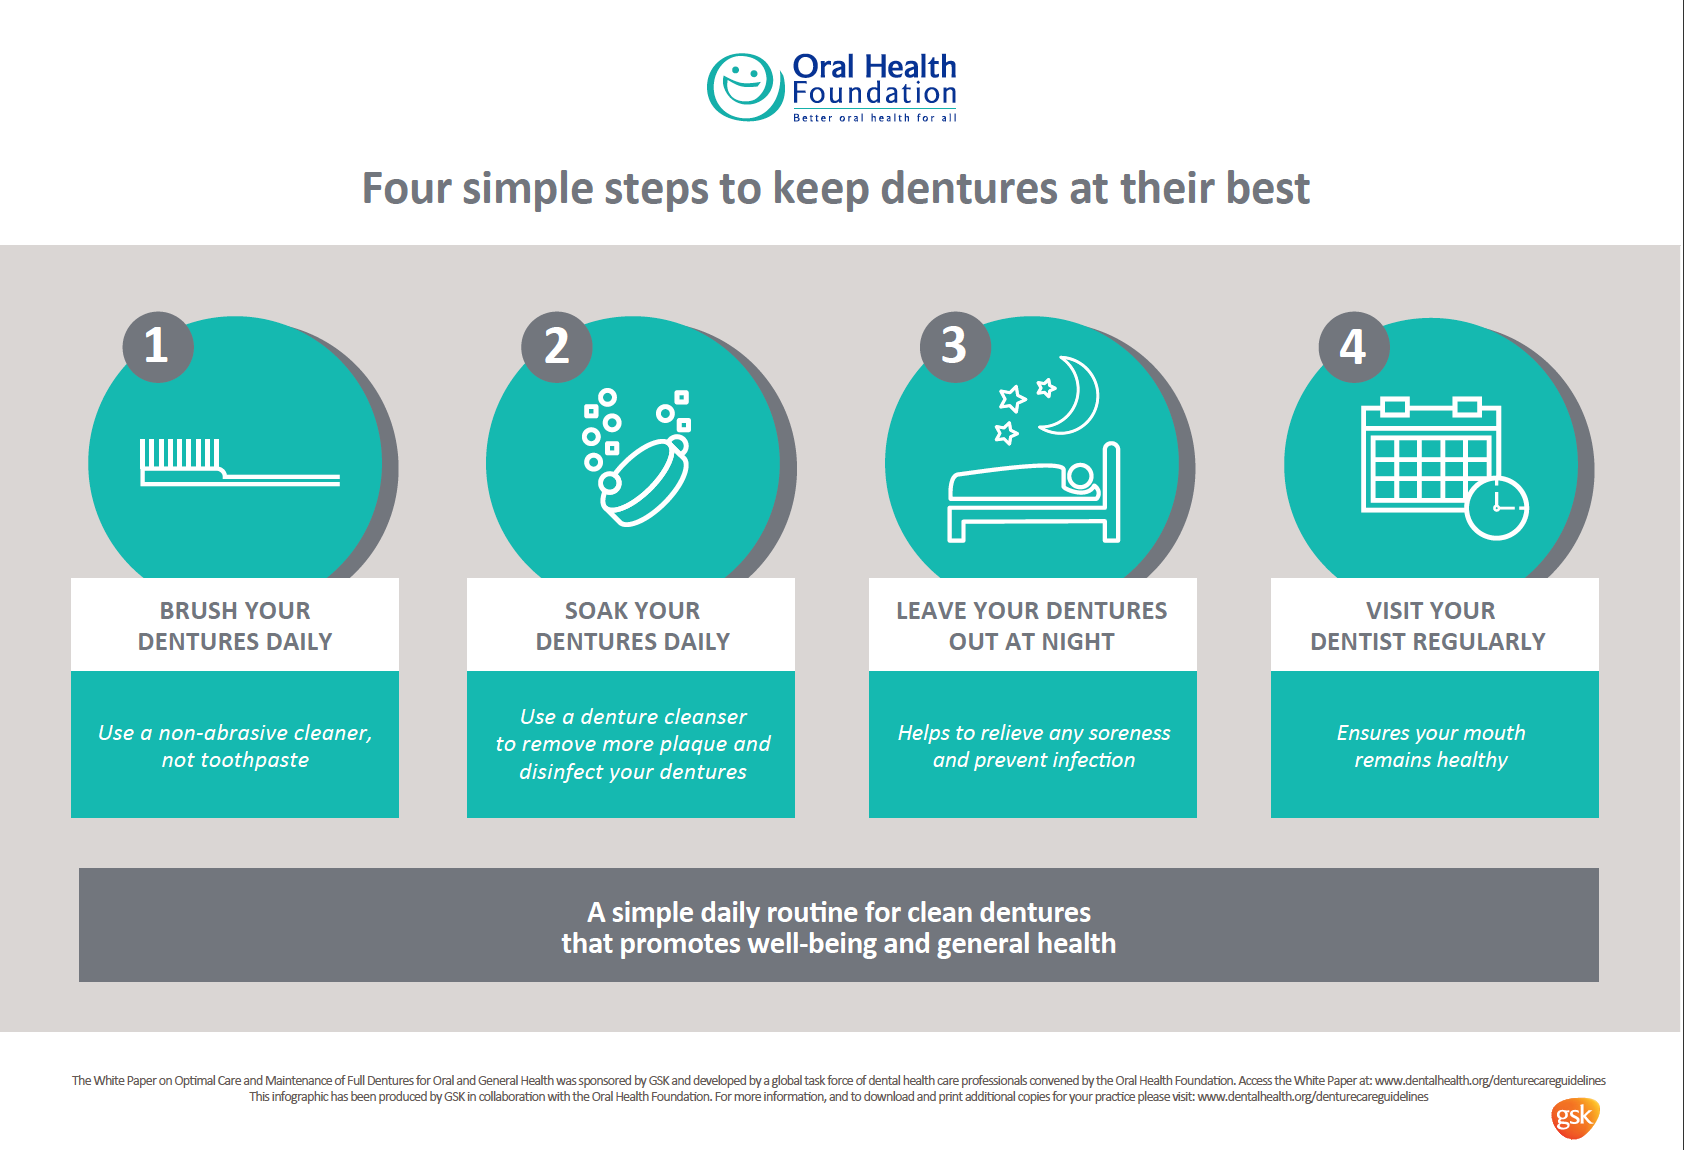 Dentist In Drayton Do You Use A Toothbrush To Clean Your Dentures Drayton Dental Care